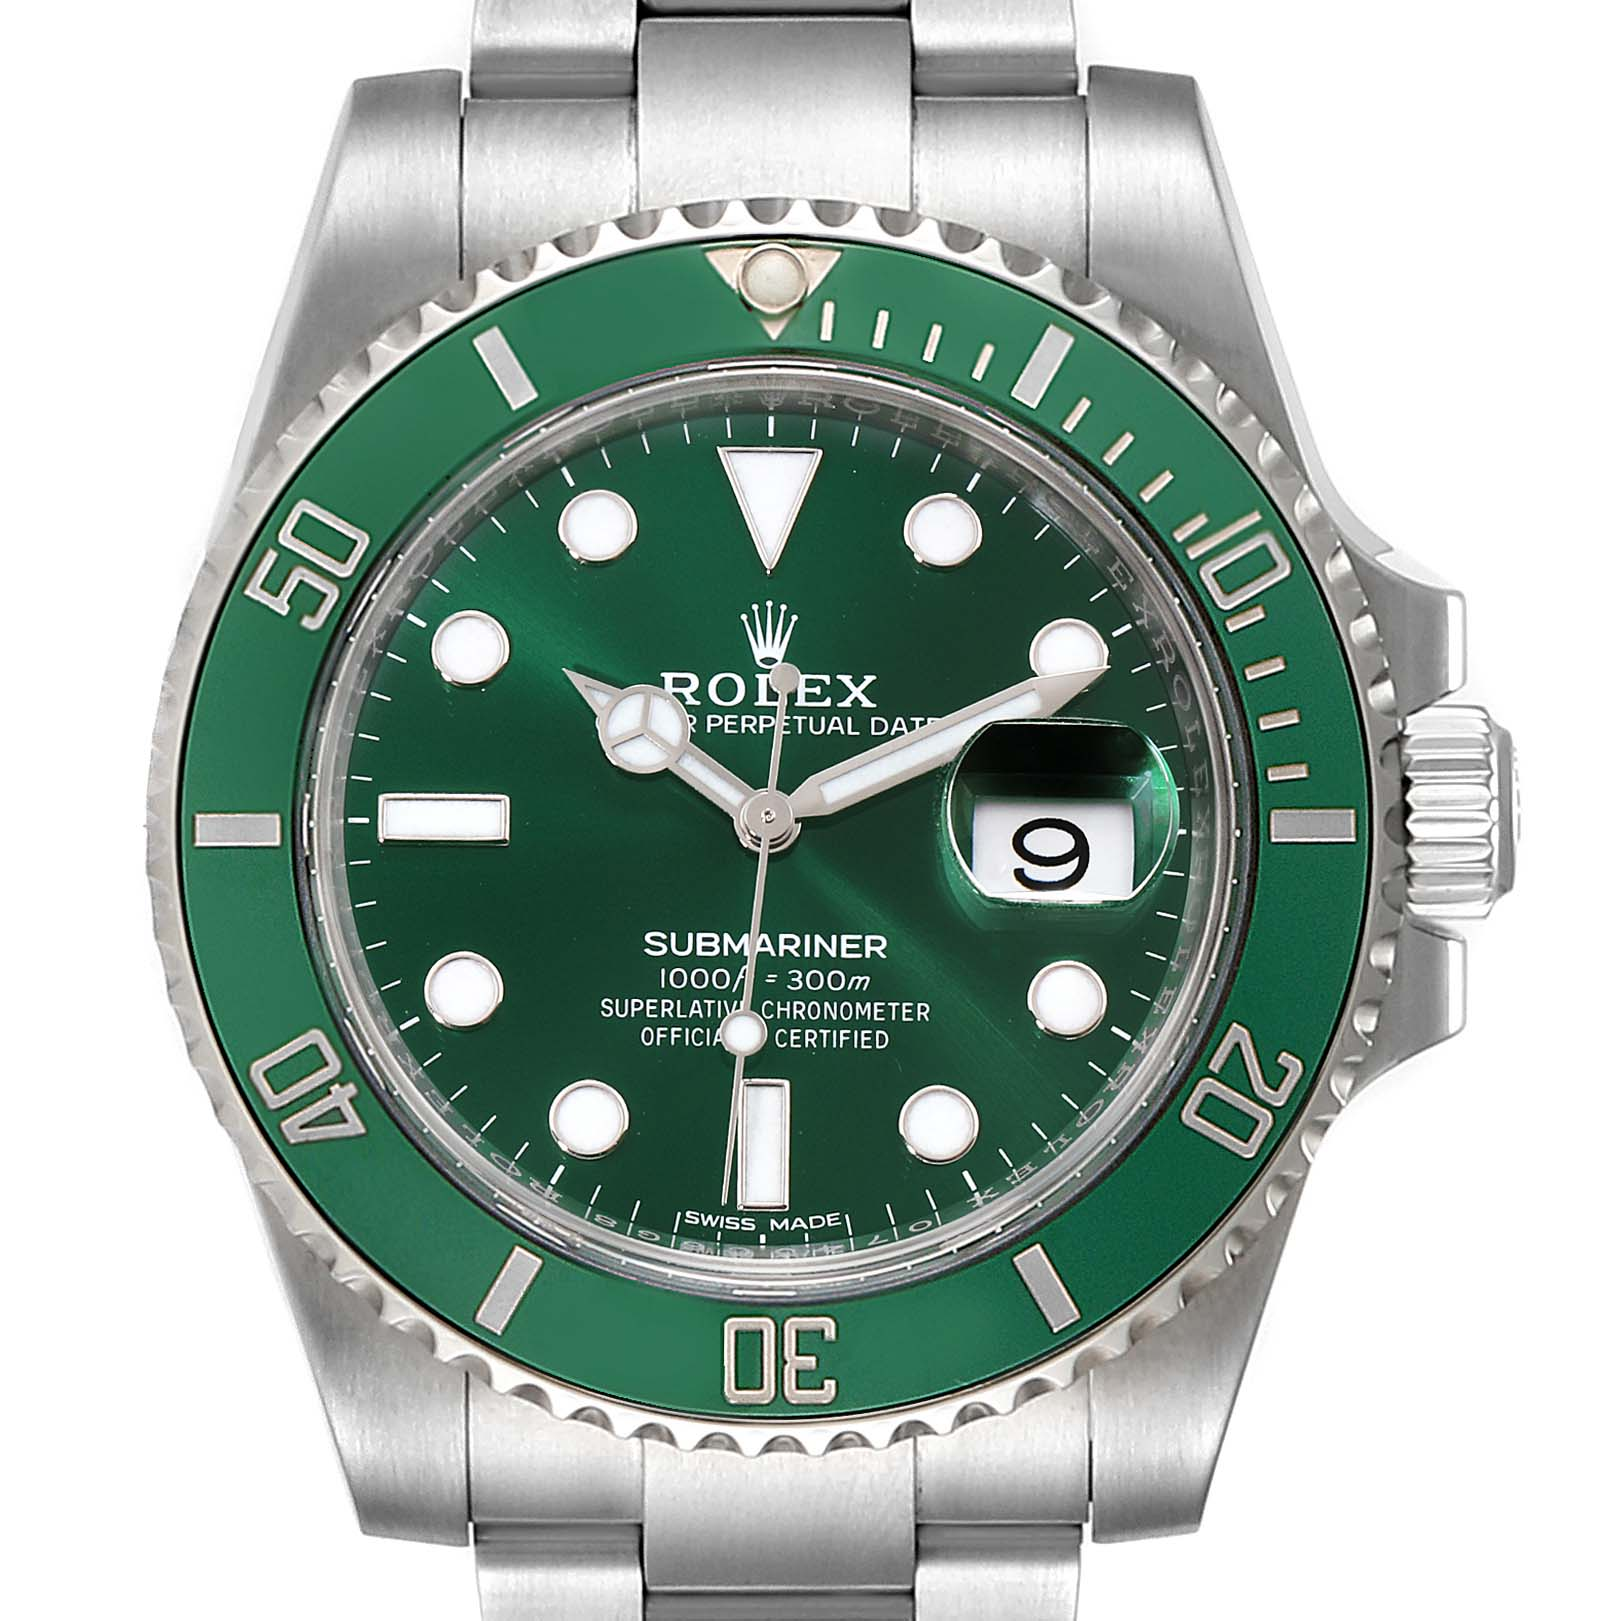 Photo of Rolex Submariner Hulk Green Dial Bezel Mens Watch 116610LV Unworn